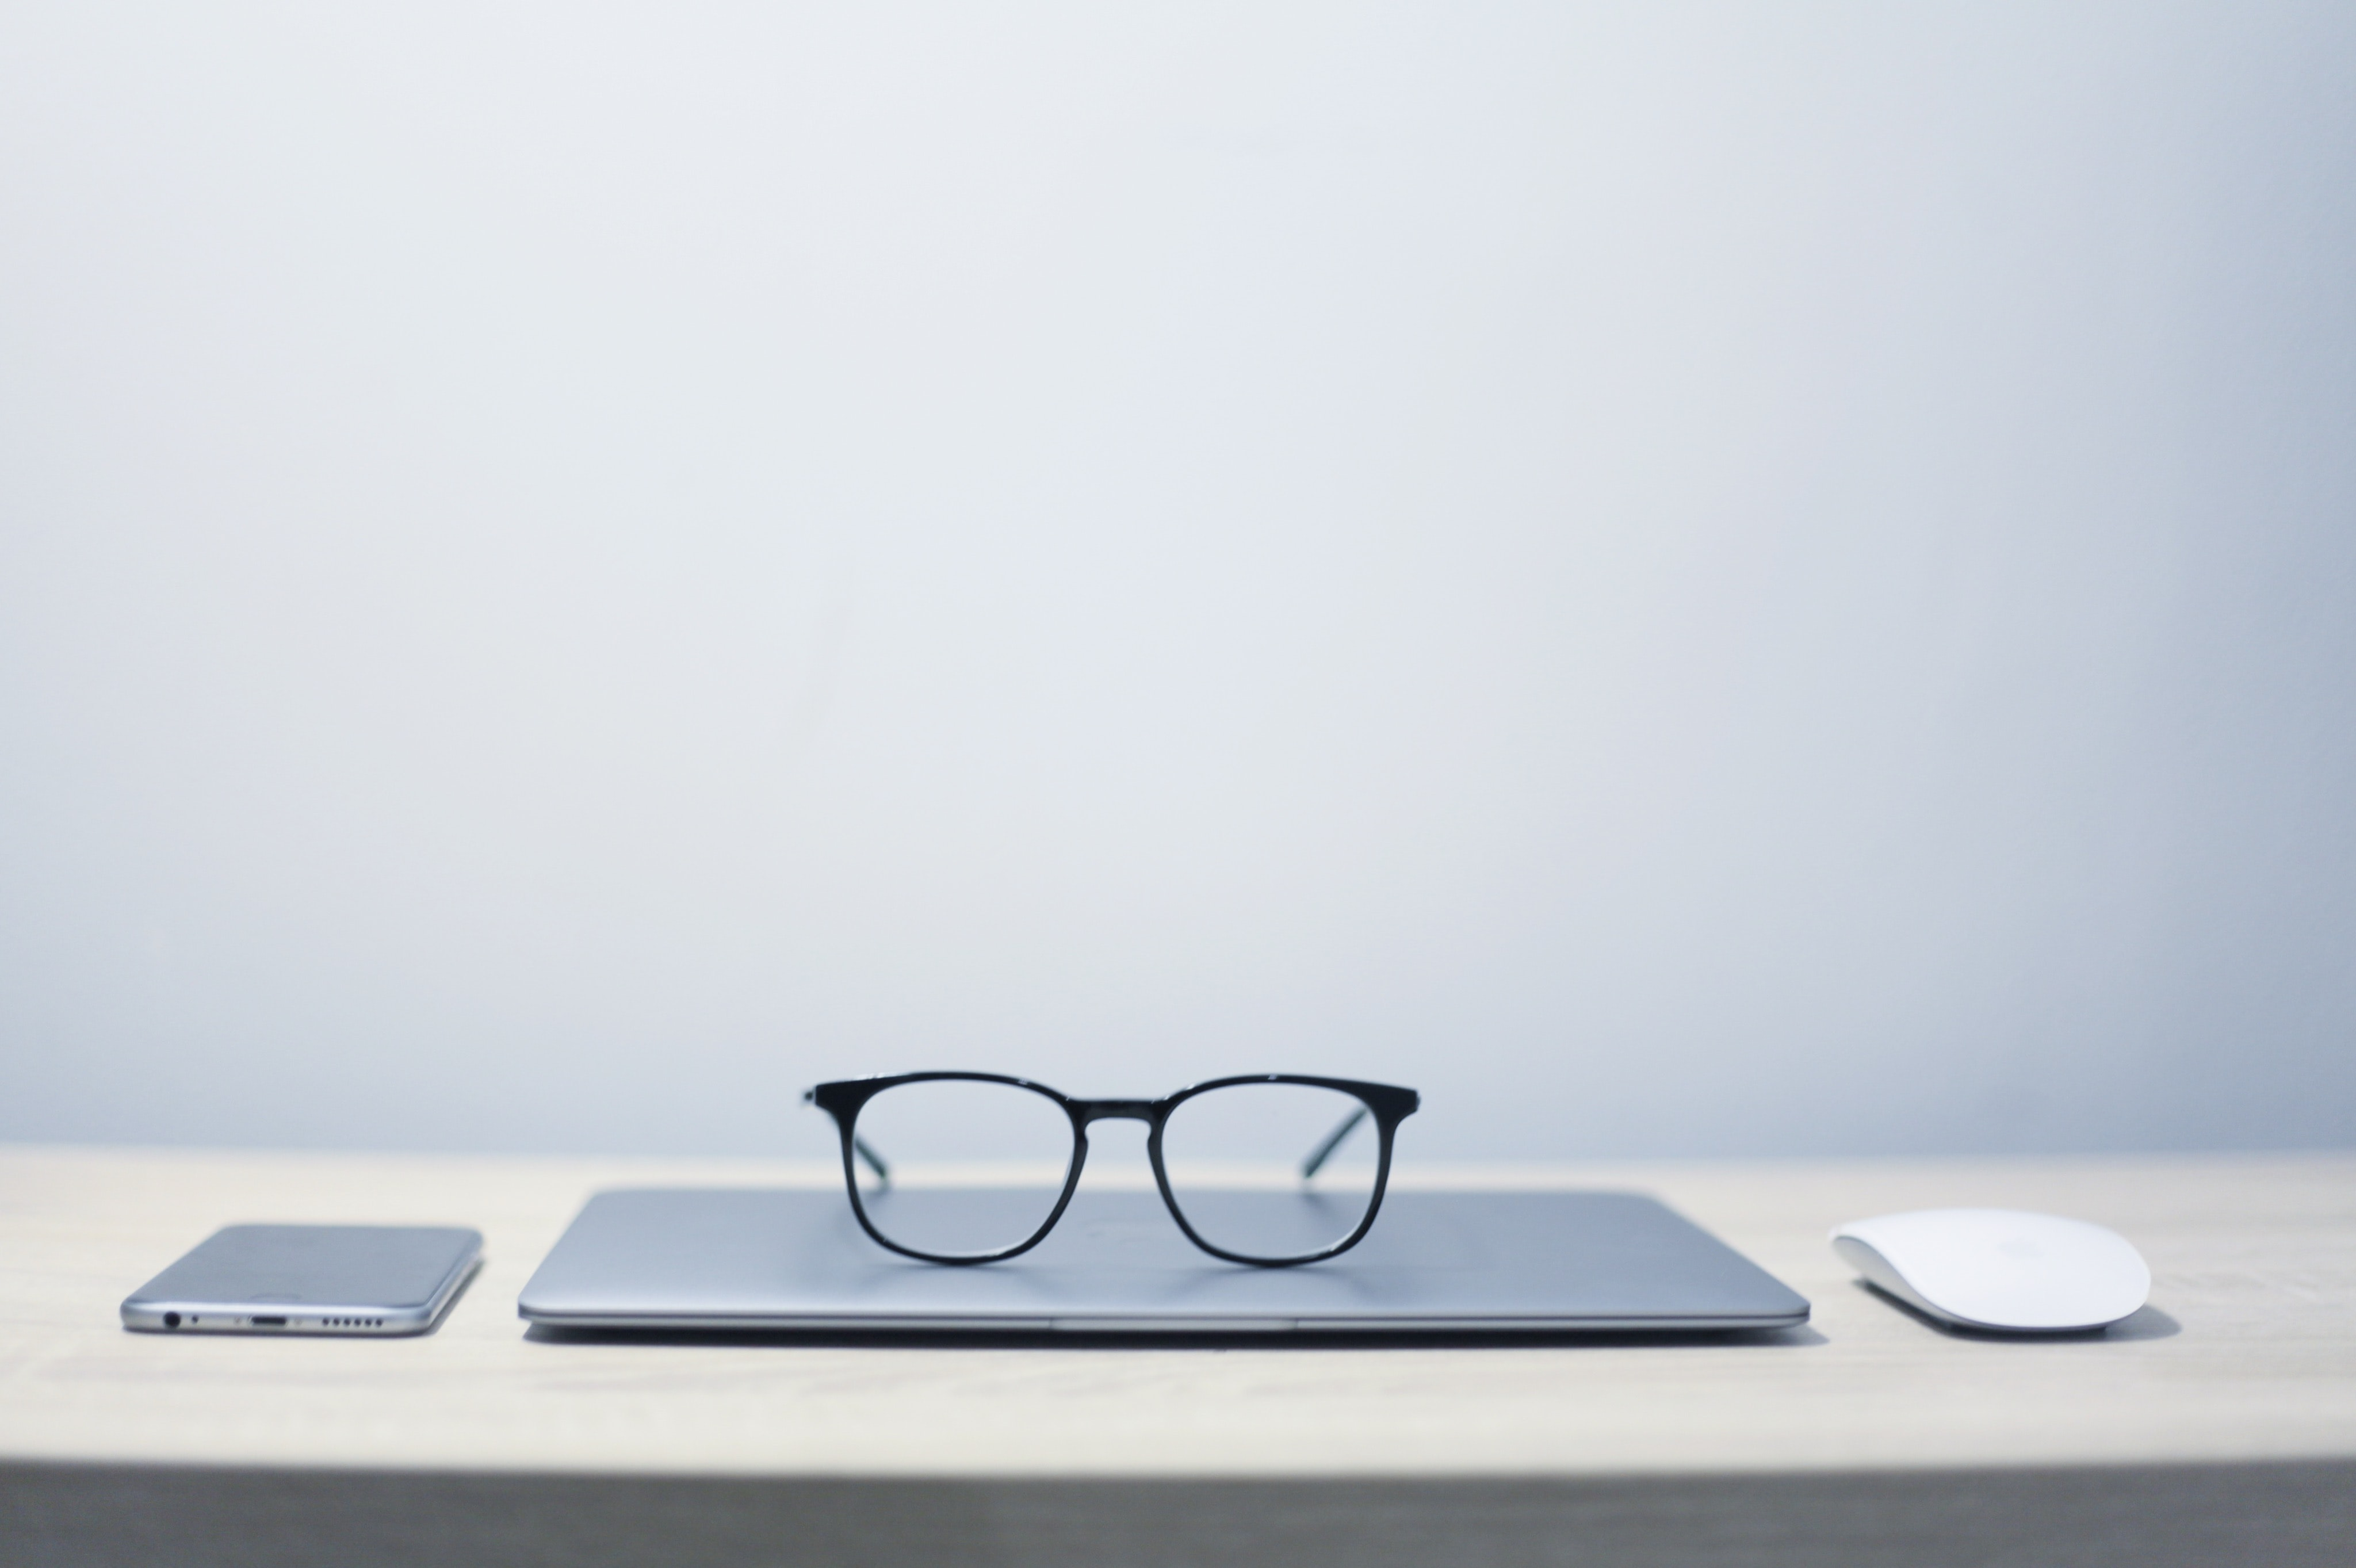 A pair of glasses on top of a laptop with a phone on one side and a mouse on the other